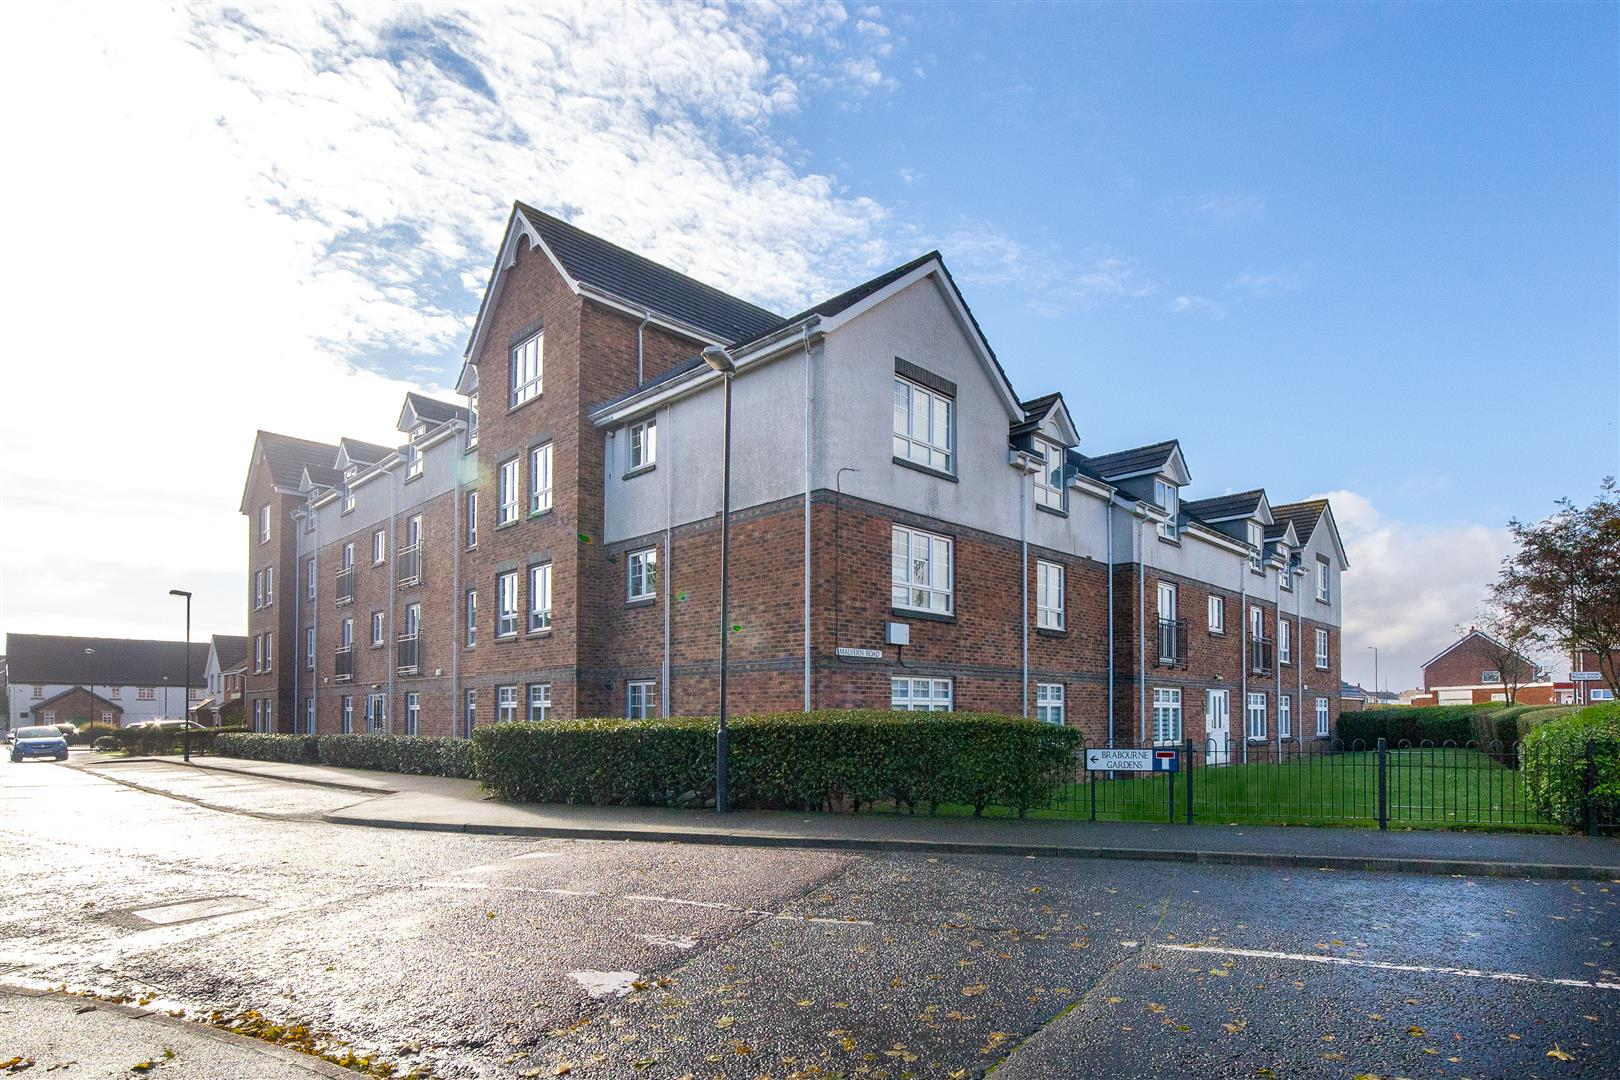 2 bed apartment for sale in North Shields, NE29 9EF, NE29